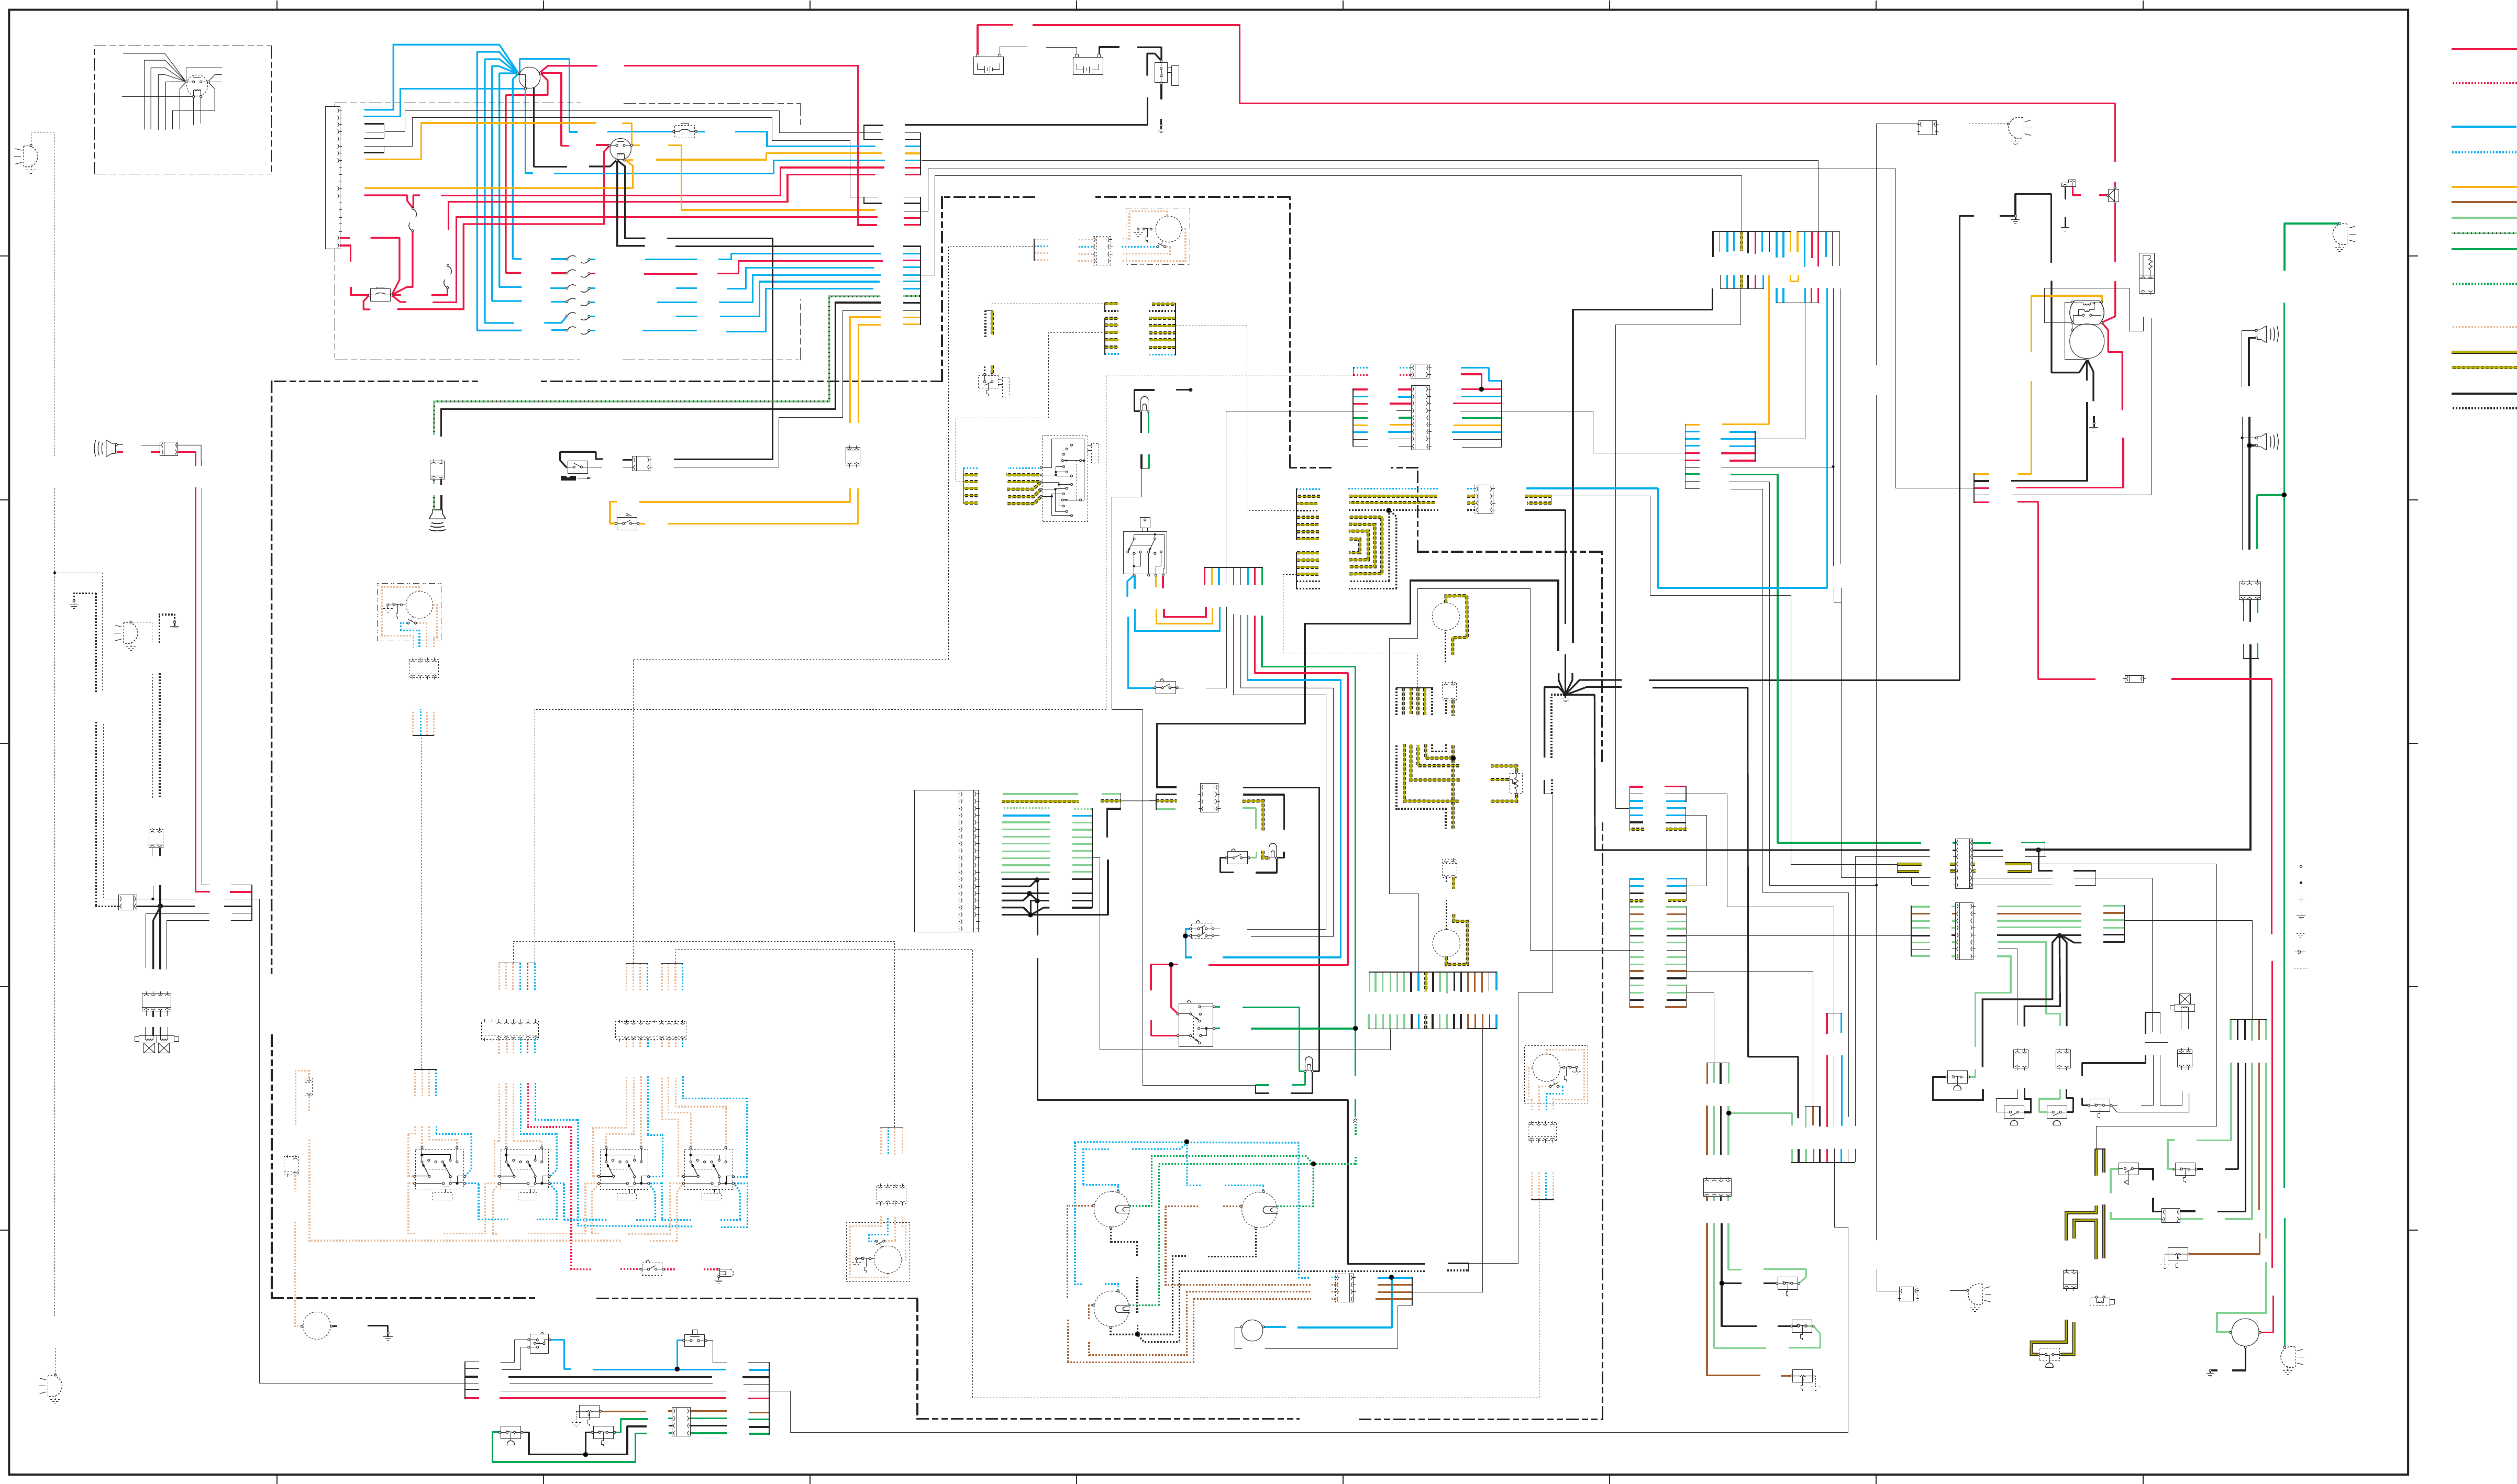 d8n tractor electrical schematic | cat machines electrical schematic  cat machines electrical schematic